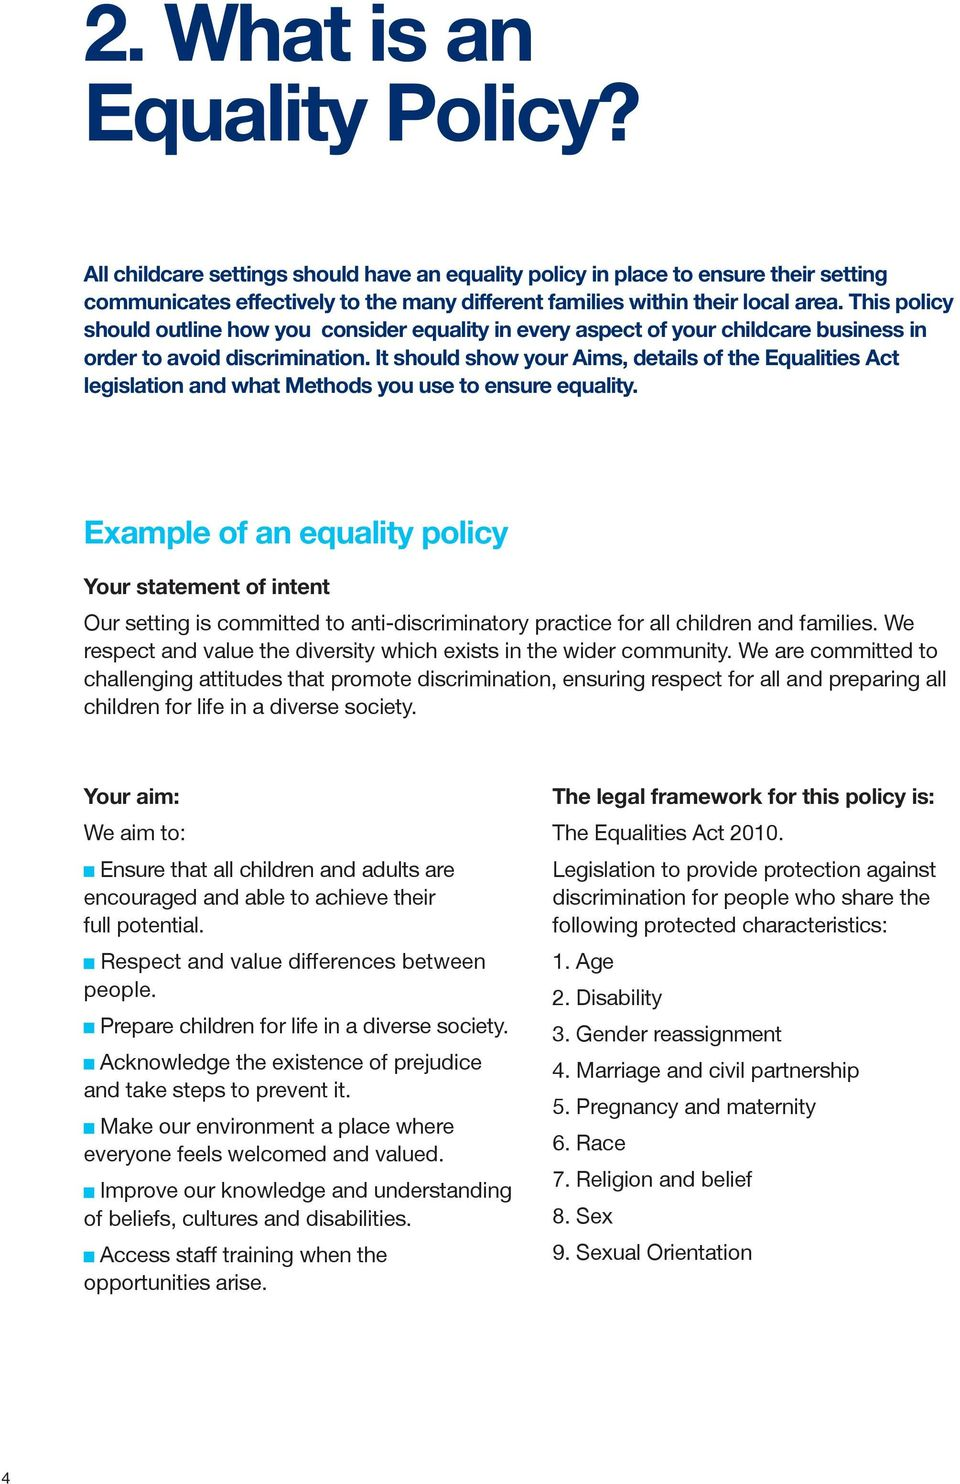 It should show your Aims, details of the Equalities Act legislation and what Methods you use to ensure equality.